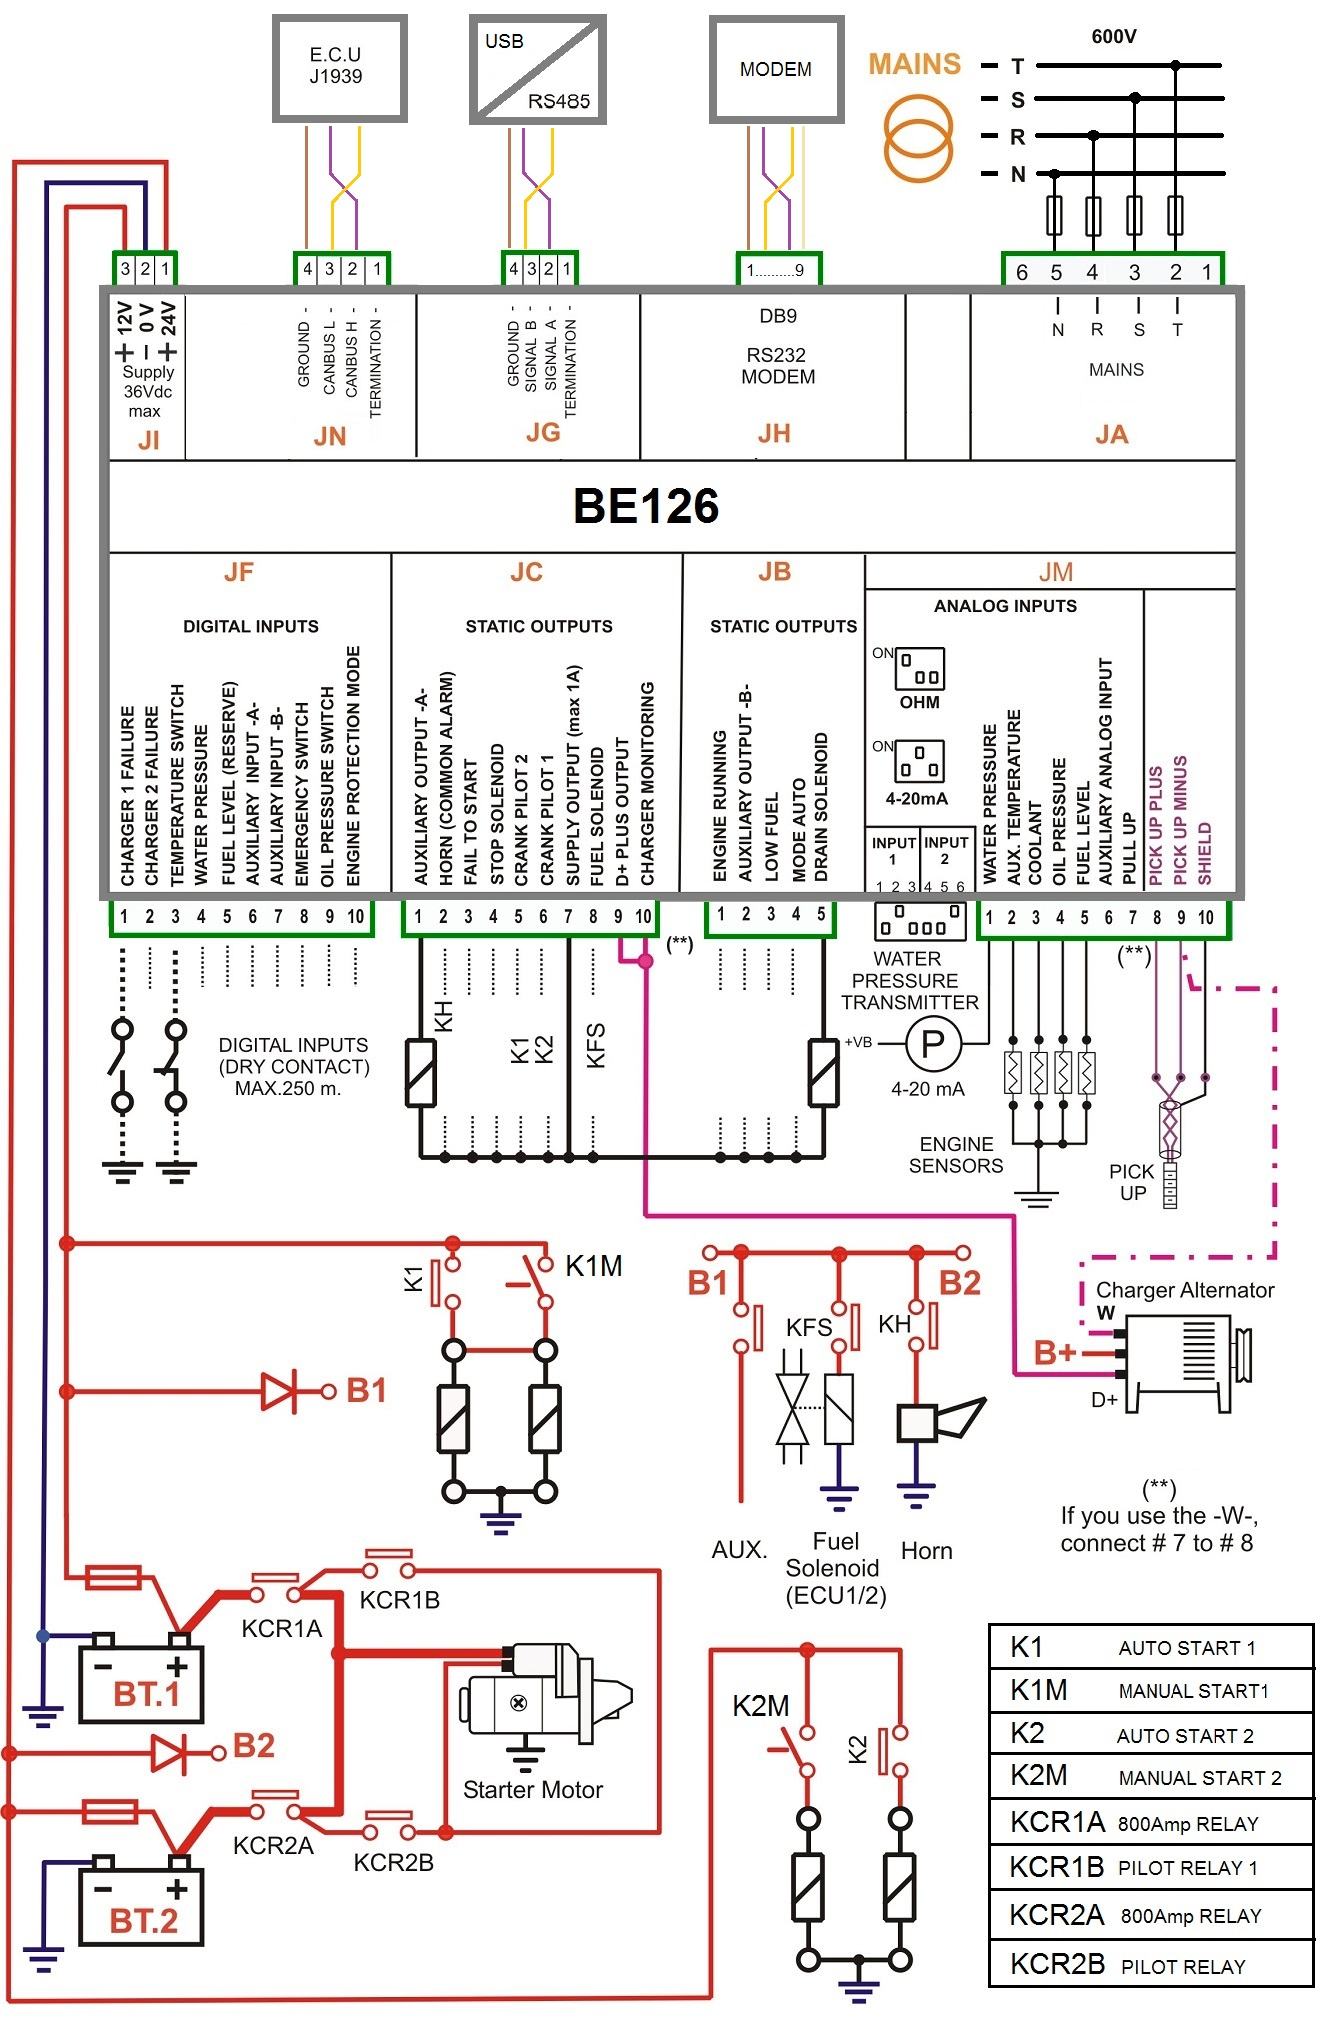 fire pump controller wiring diagram genset controller fire pump controller wiring diagram